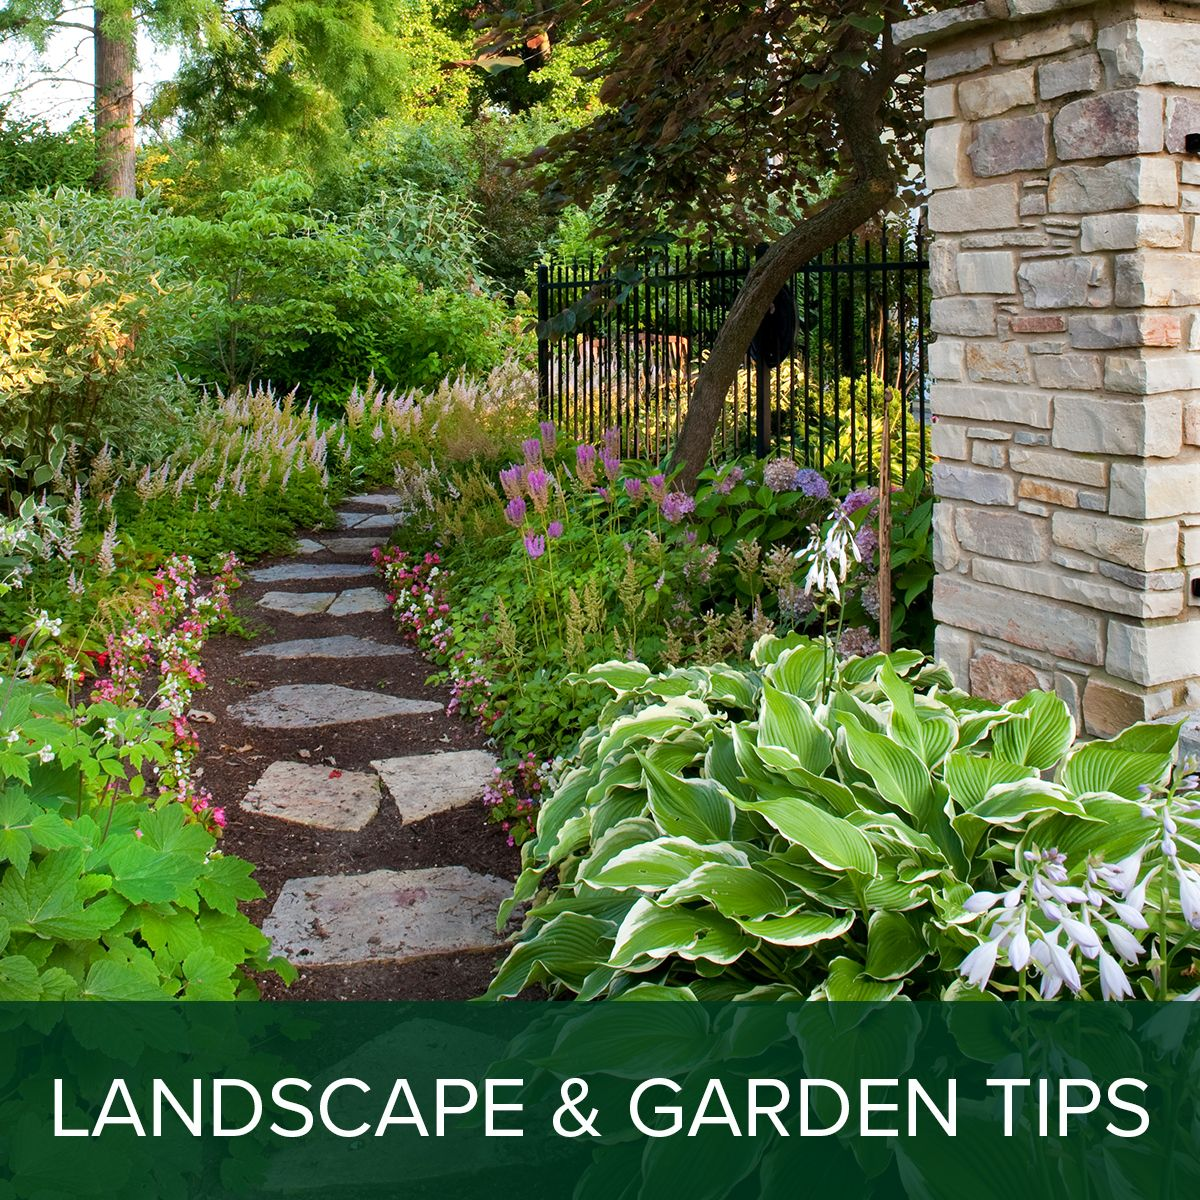 We Are A Landscape Company Offering A Wide Range Of Personalized Professional Services From Landscape A Garden Landscaping Desert Landscaping Landscaping Tips